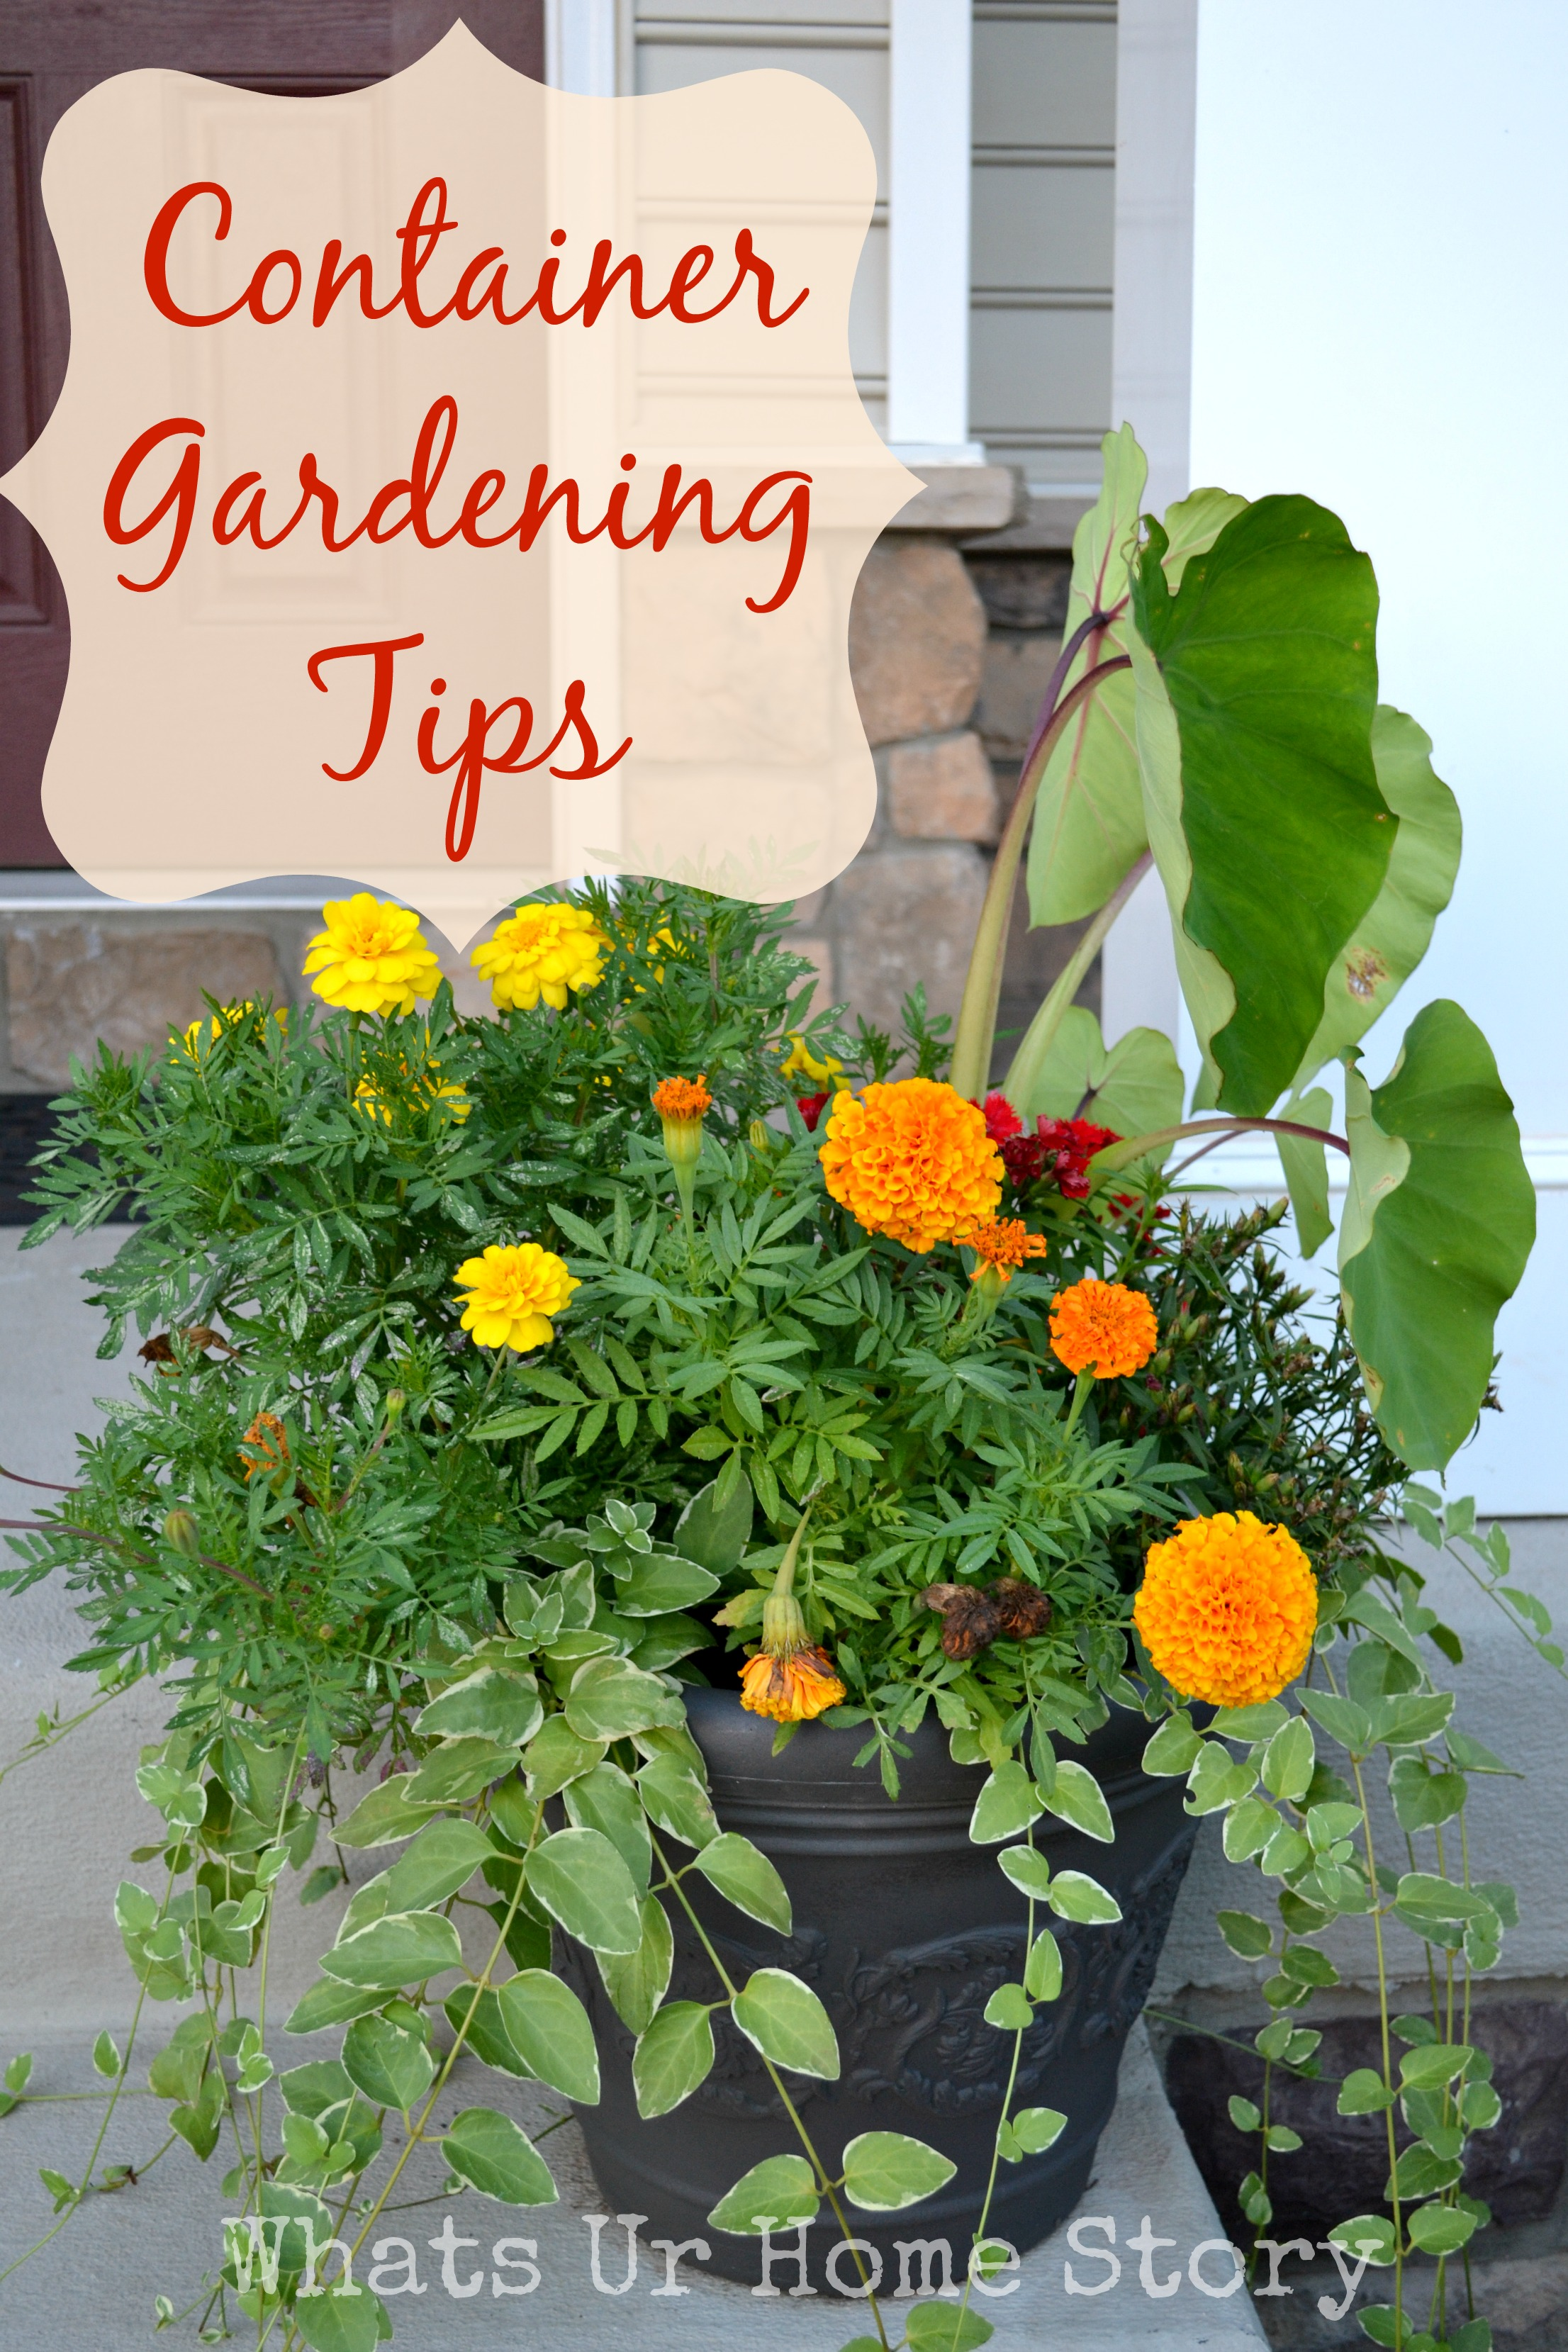 Container gardening whats ur home story - Container gardening basics ...